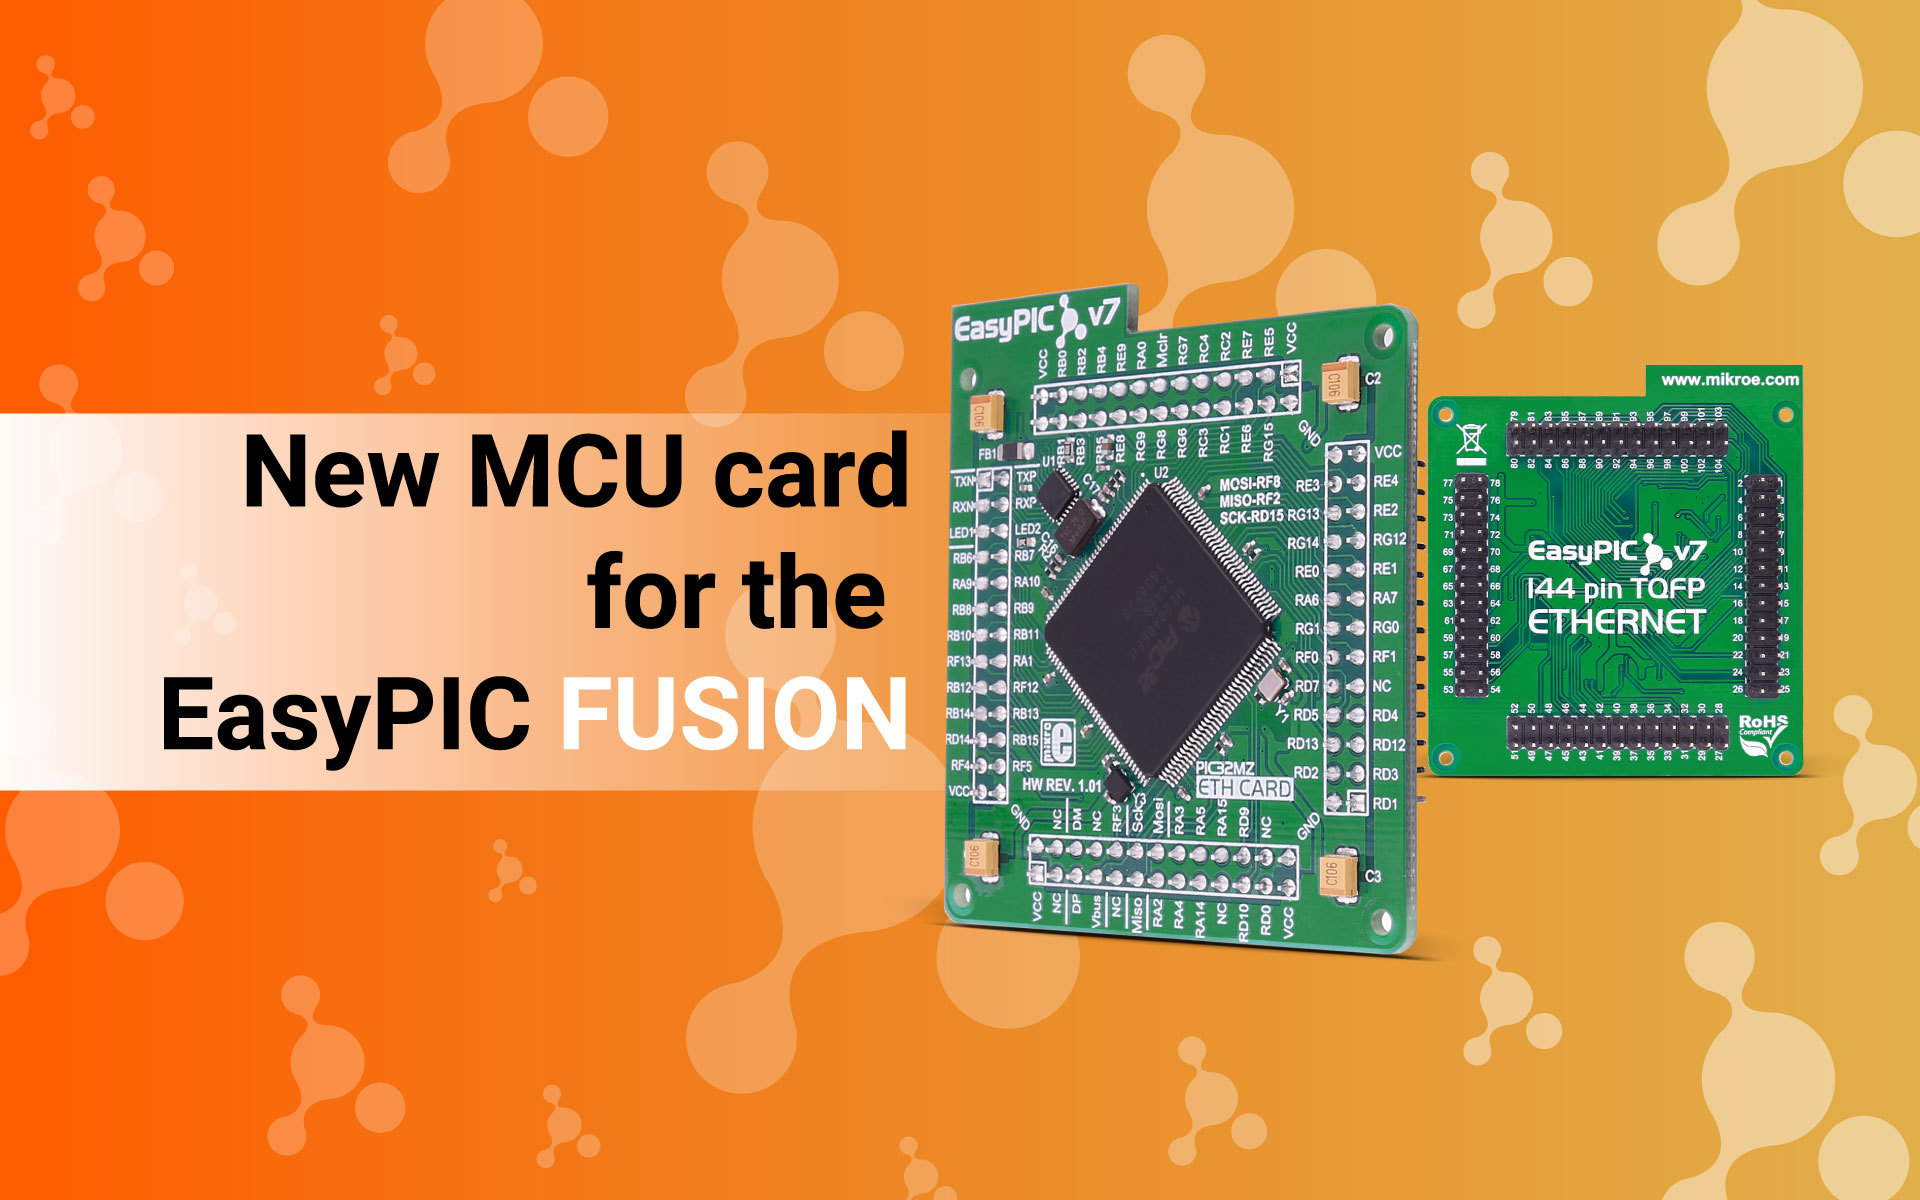 New MCU card for the EasyPIC Fusion board